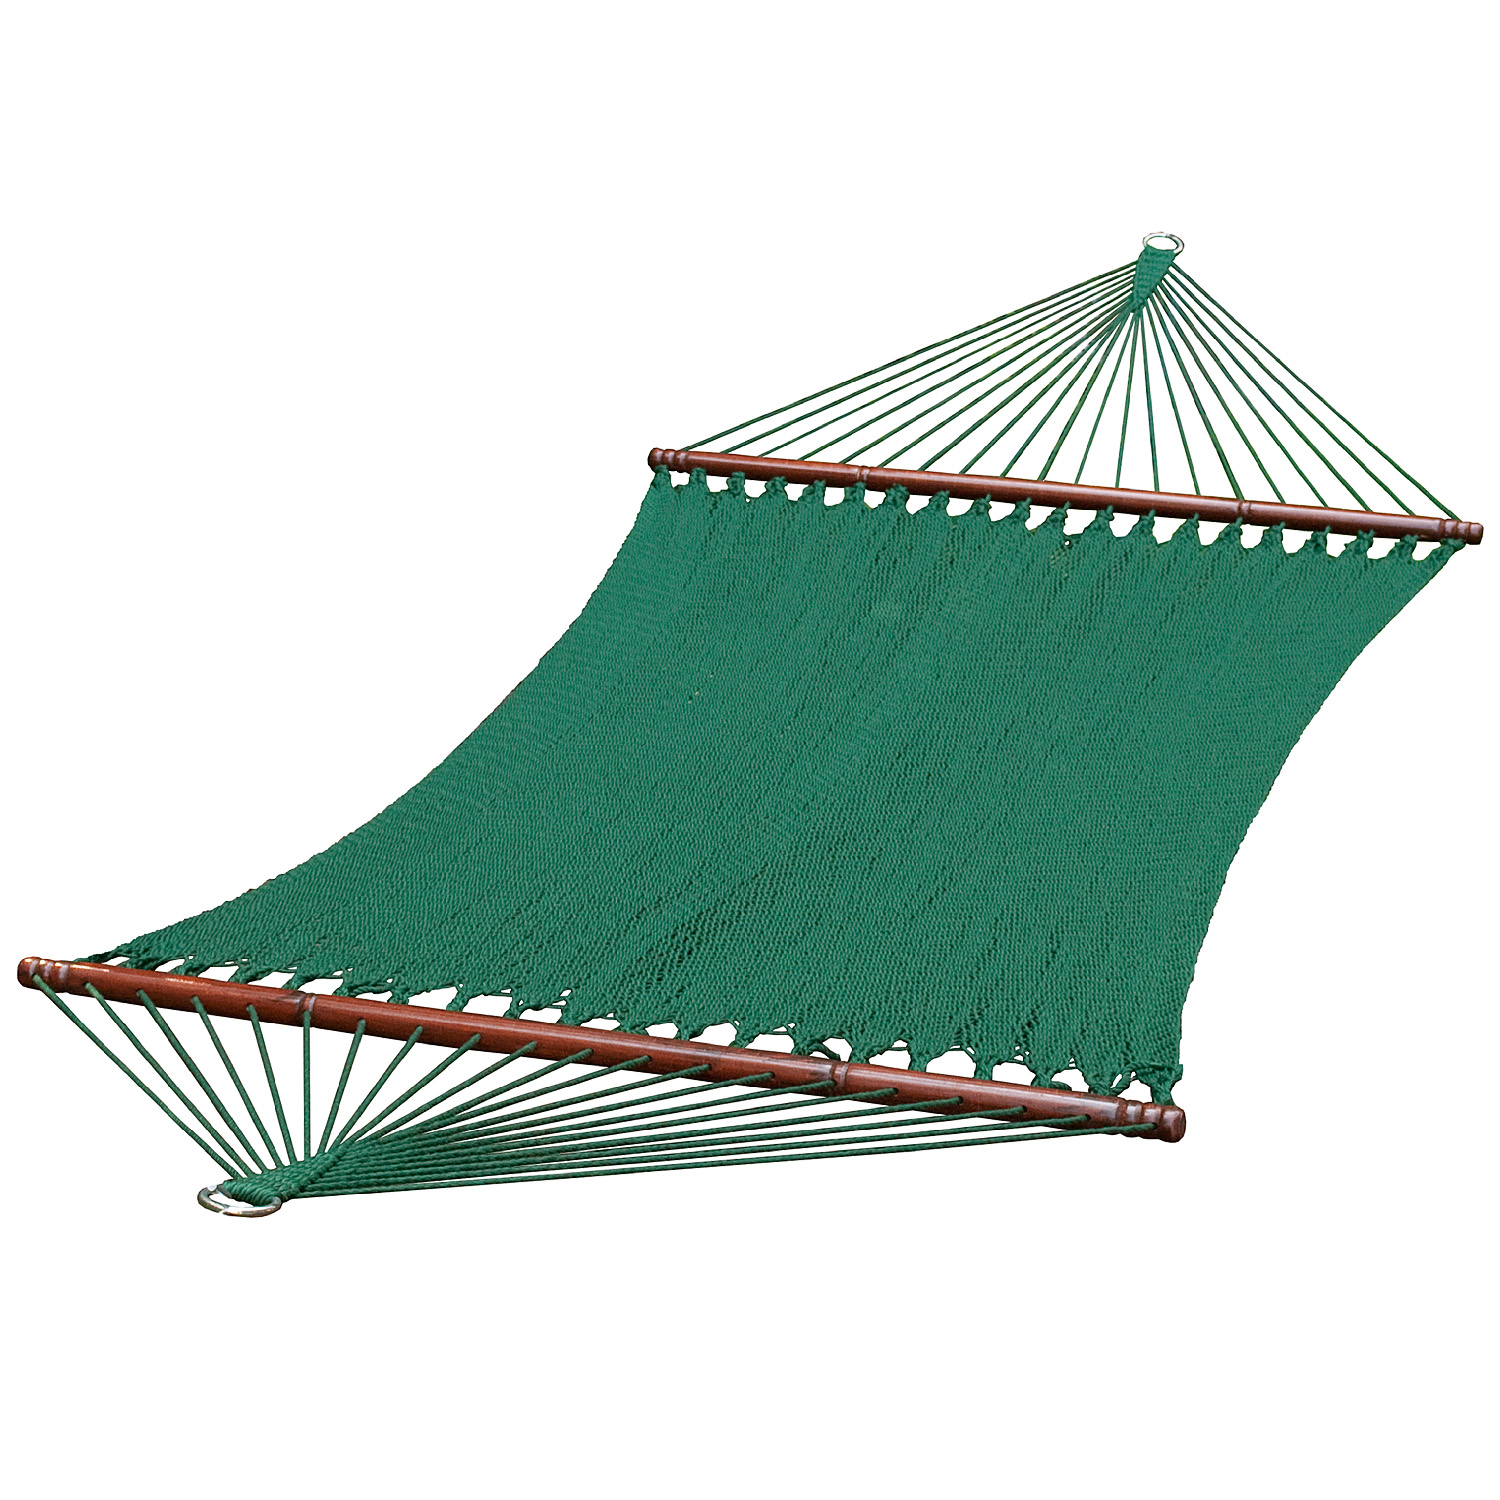 13 ft. 2-Point Tight Weave Soft Polyester Caribbean Rope Hammock, Green